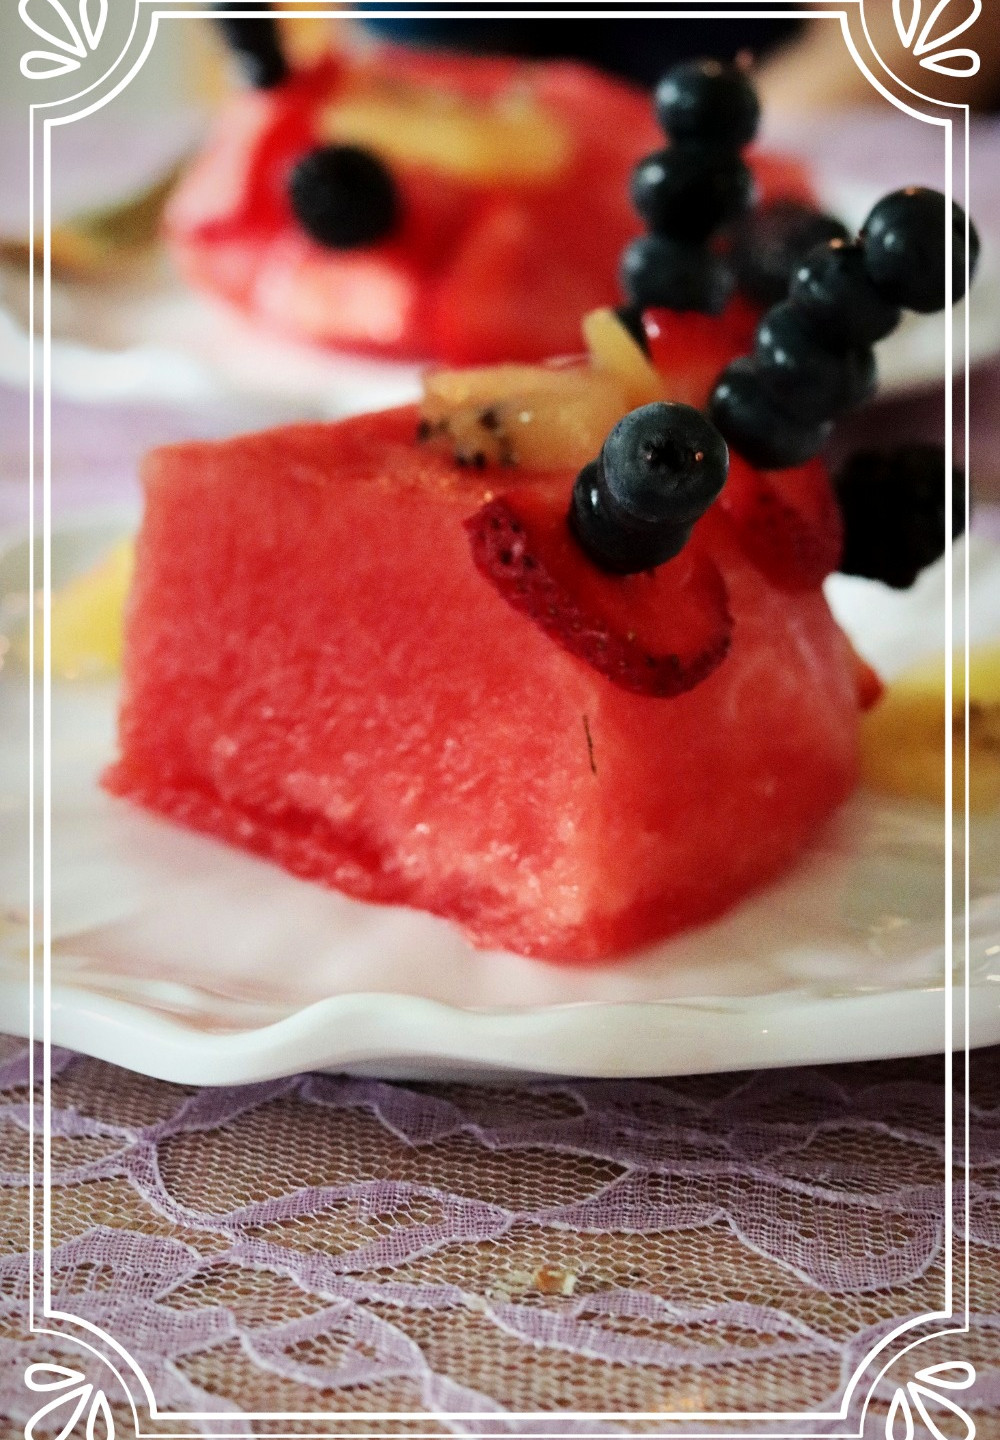 Watermelon cake slice